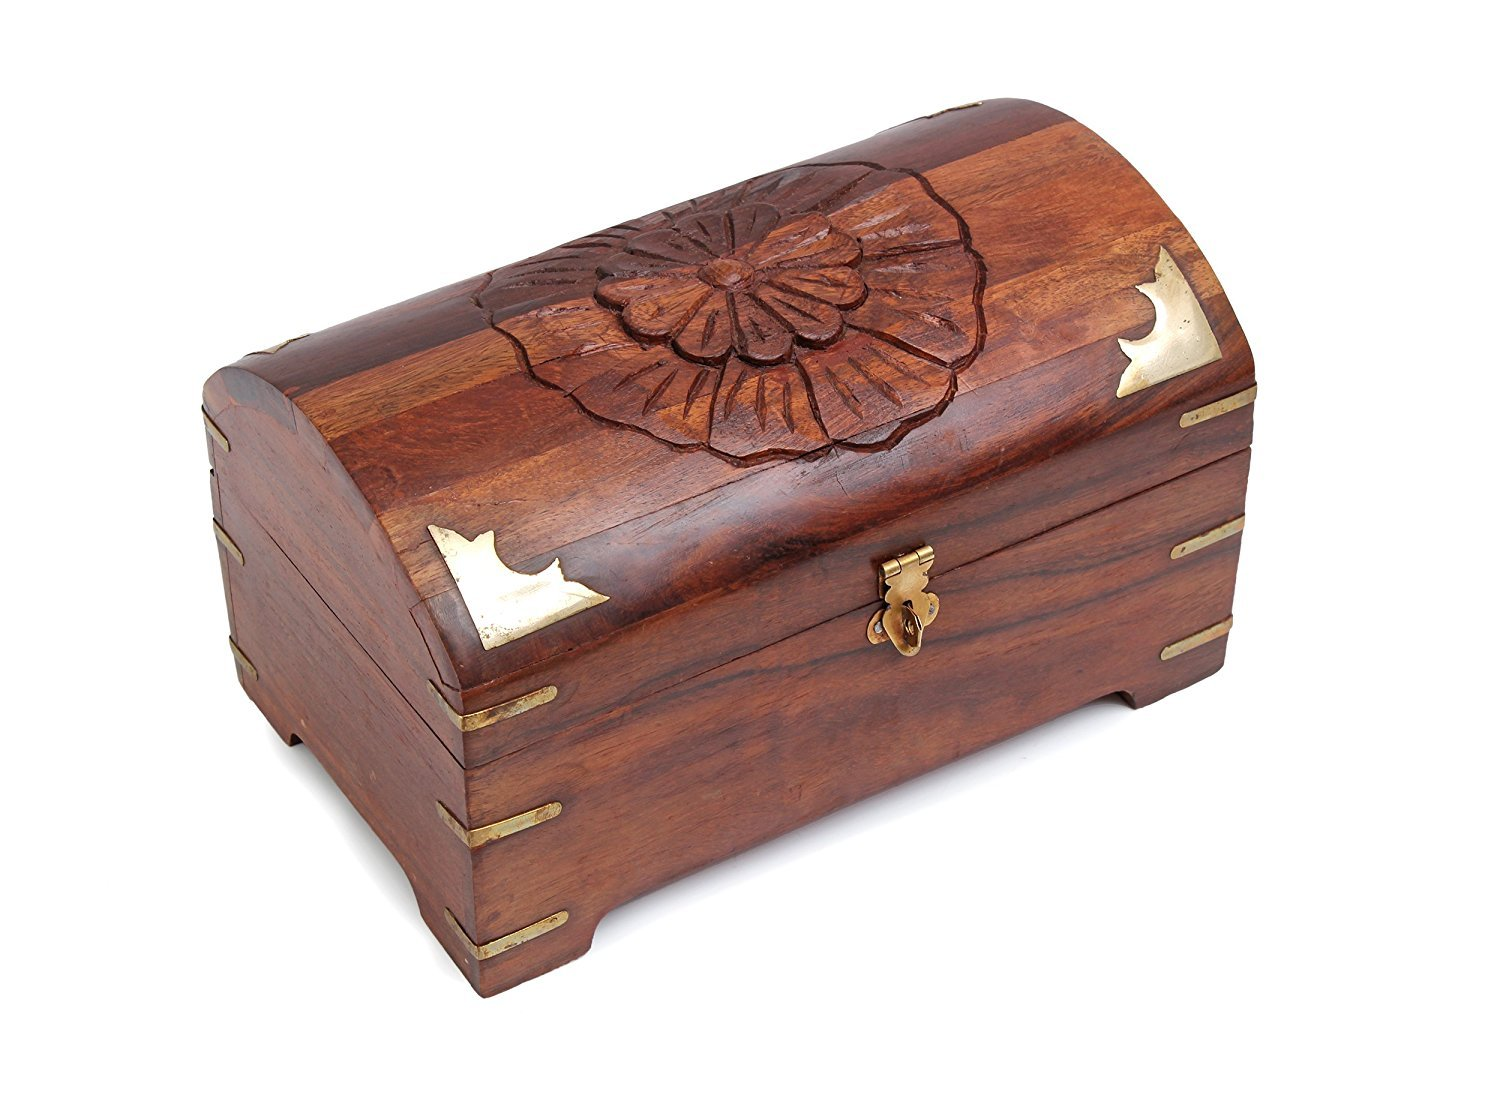 Decorative Wooden Jewelry Trinket Box Chest Organizer Handcrafted Keepsake Storage Box 9 x 5.5 inches by Aheli